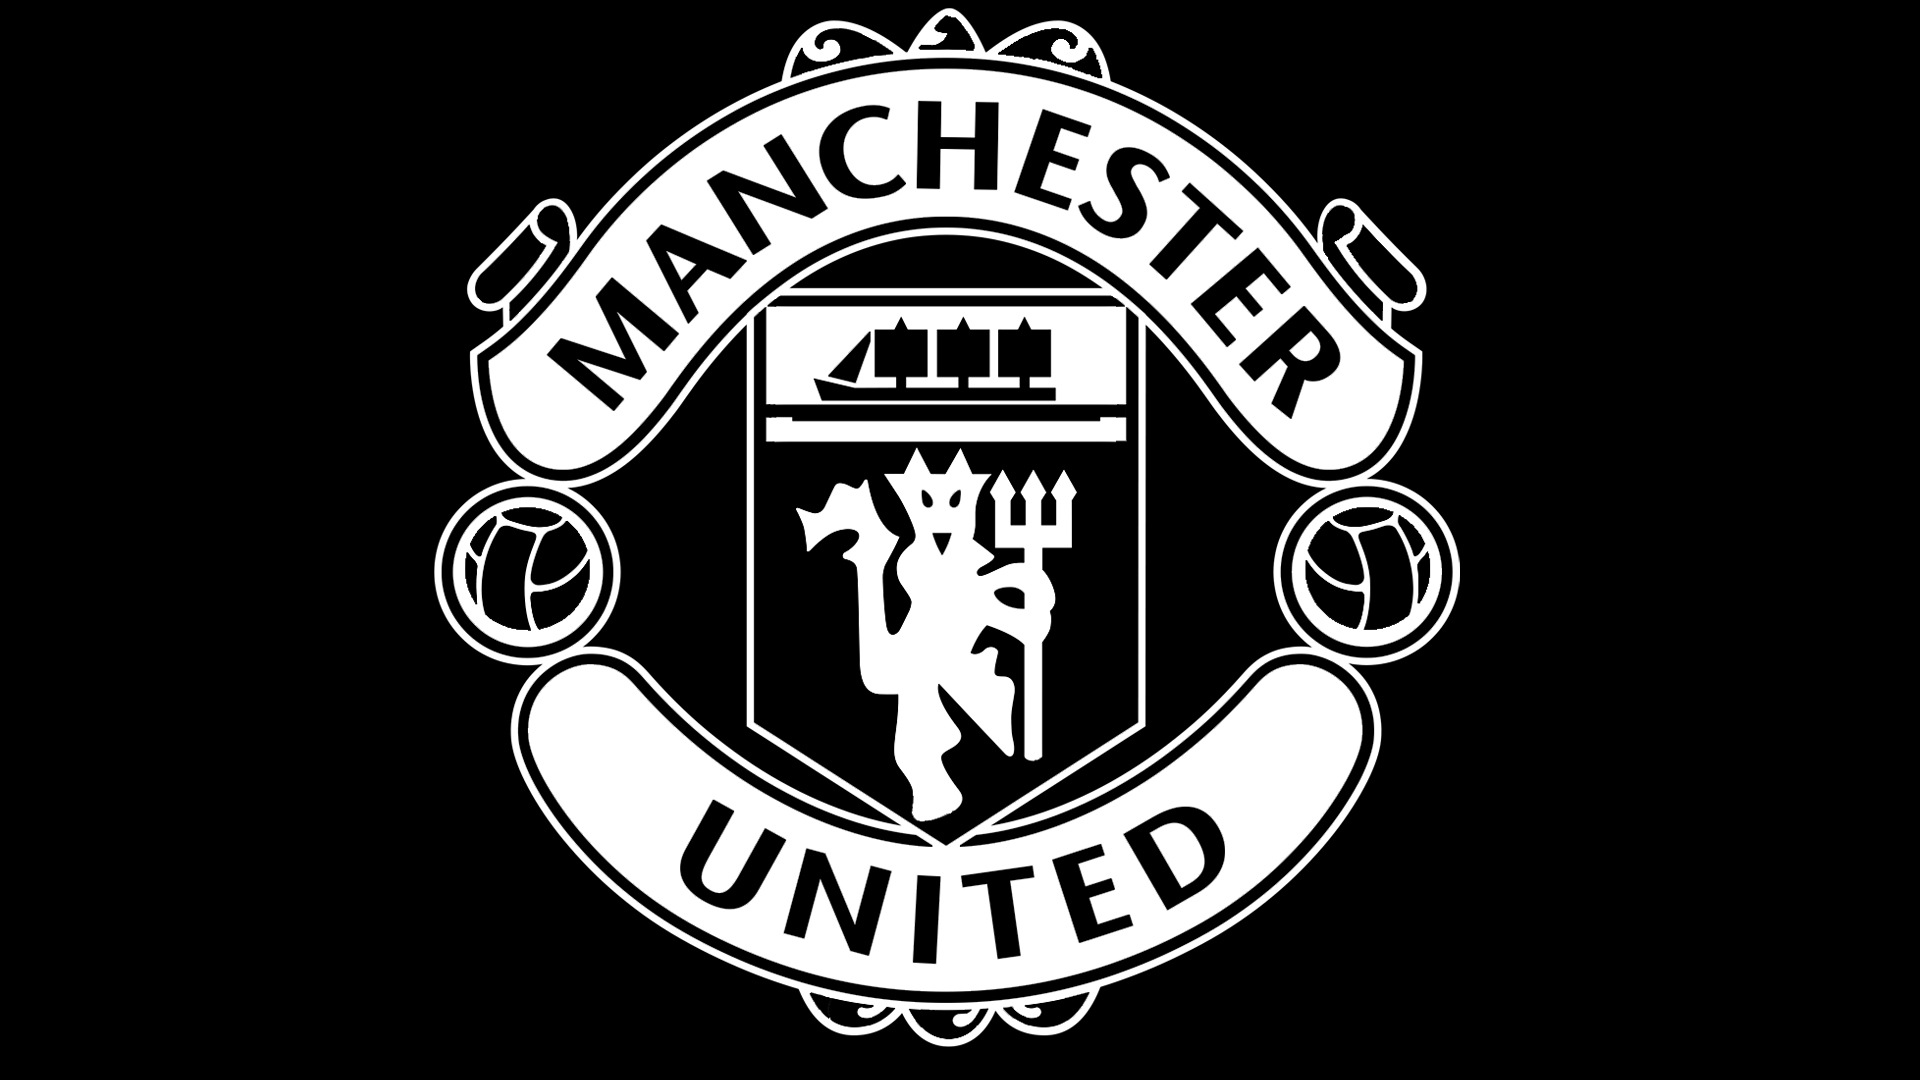 manchester united logo histoire signification et evolution symbole manchester united logo histoire